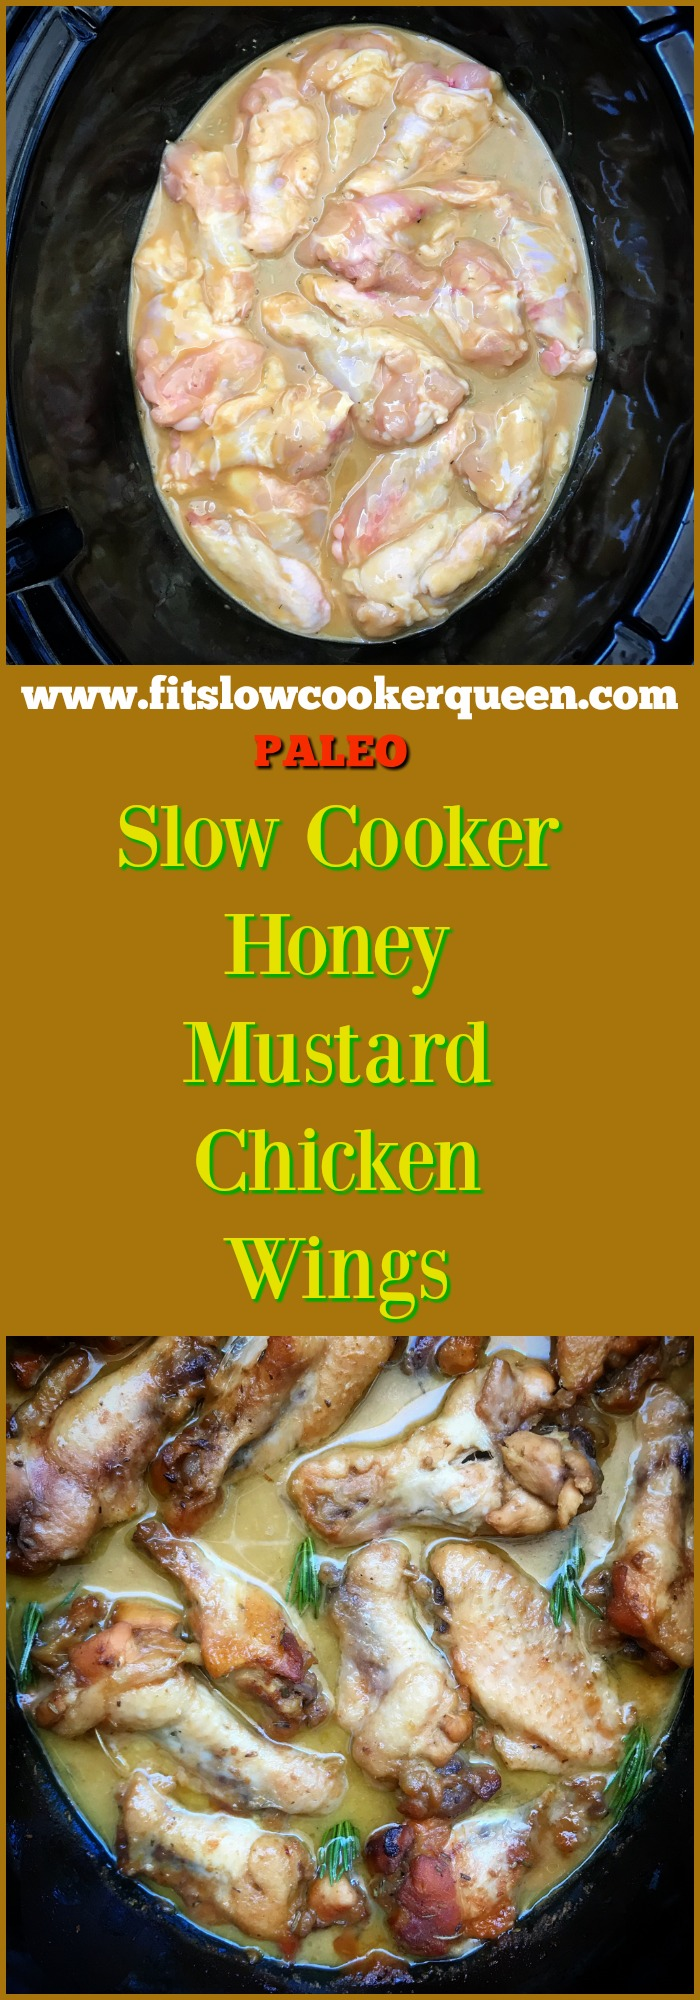 A homemade, paleo, honey mustard sauce slow cooks with chicken wings in this slow cooker recipe that's the perfect appetizer or game-day snack.